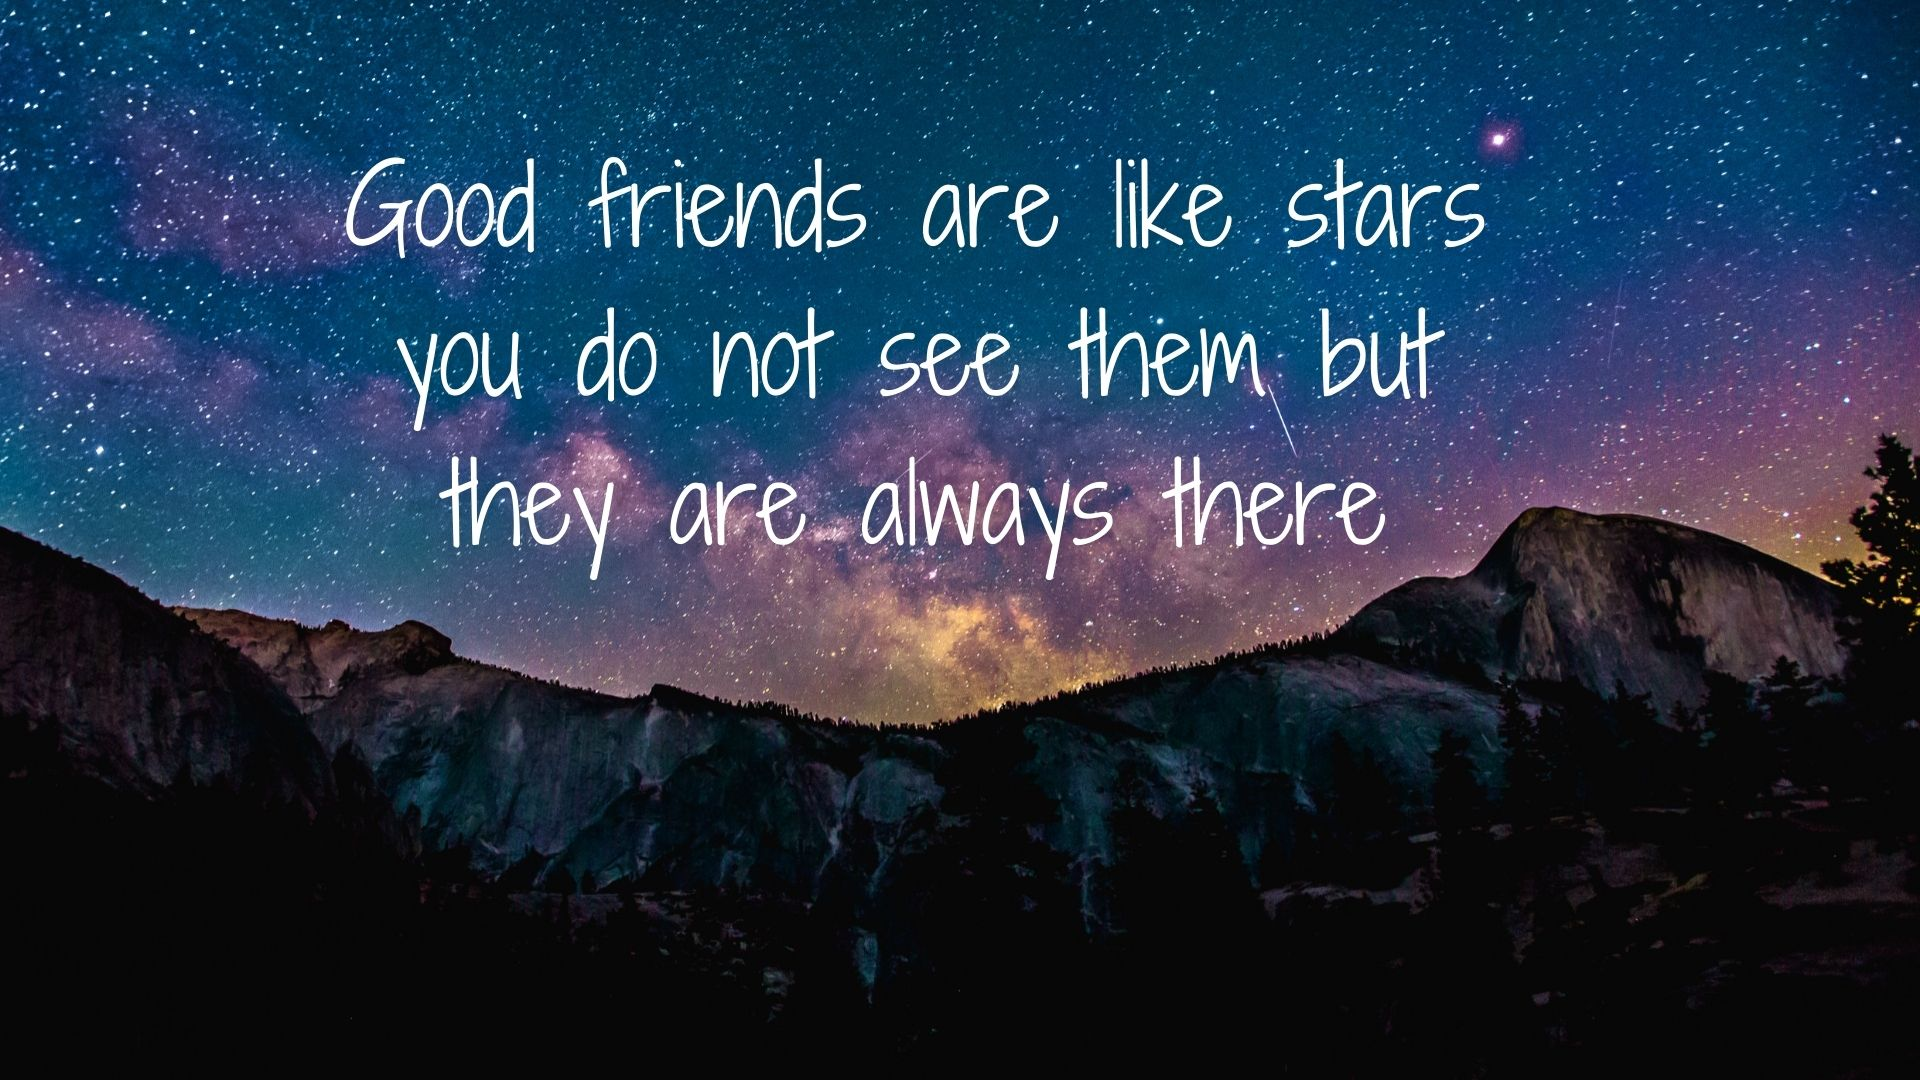 Good friends are like stars - you do not see them but they are always there